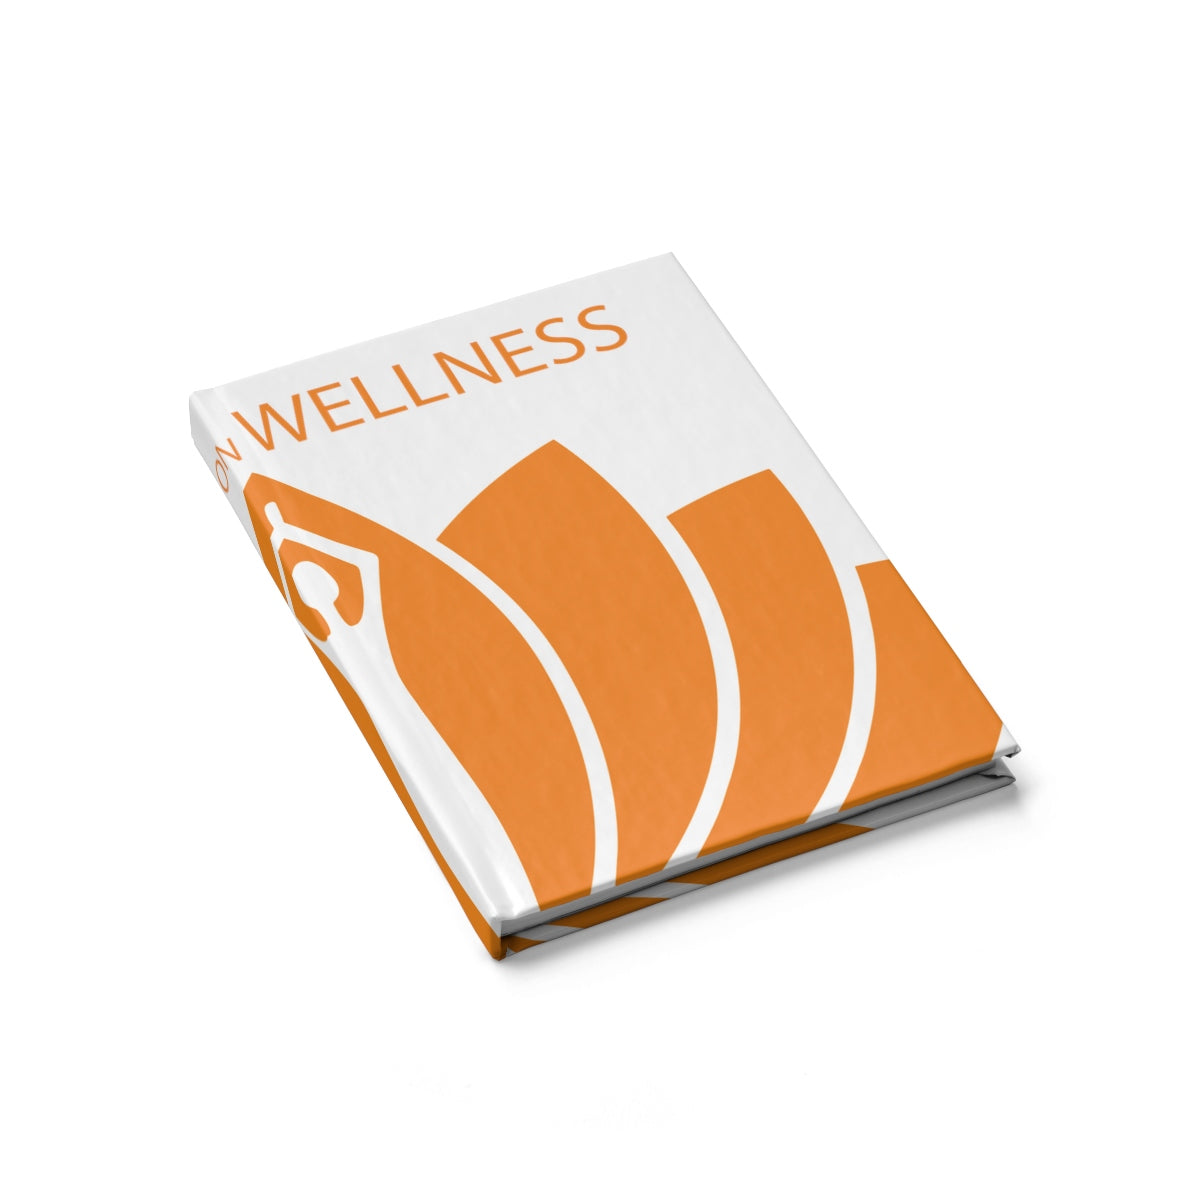 FOCUS ON WELLNESS Journal - Blank